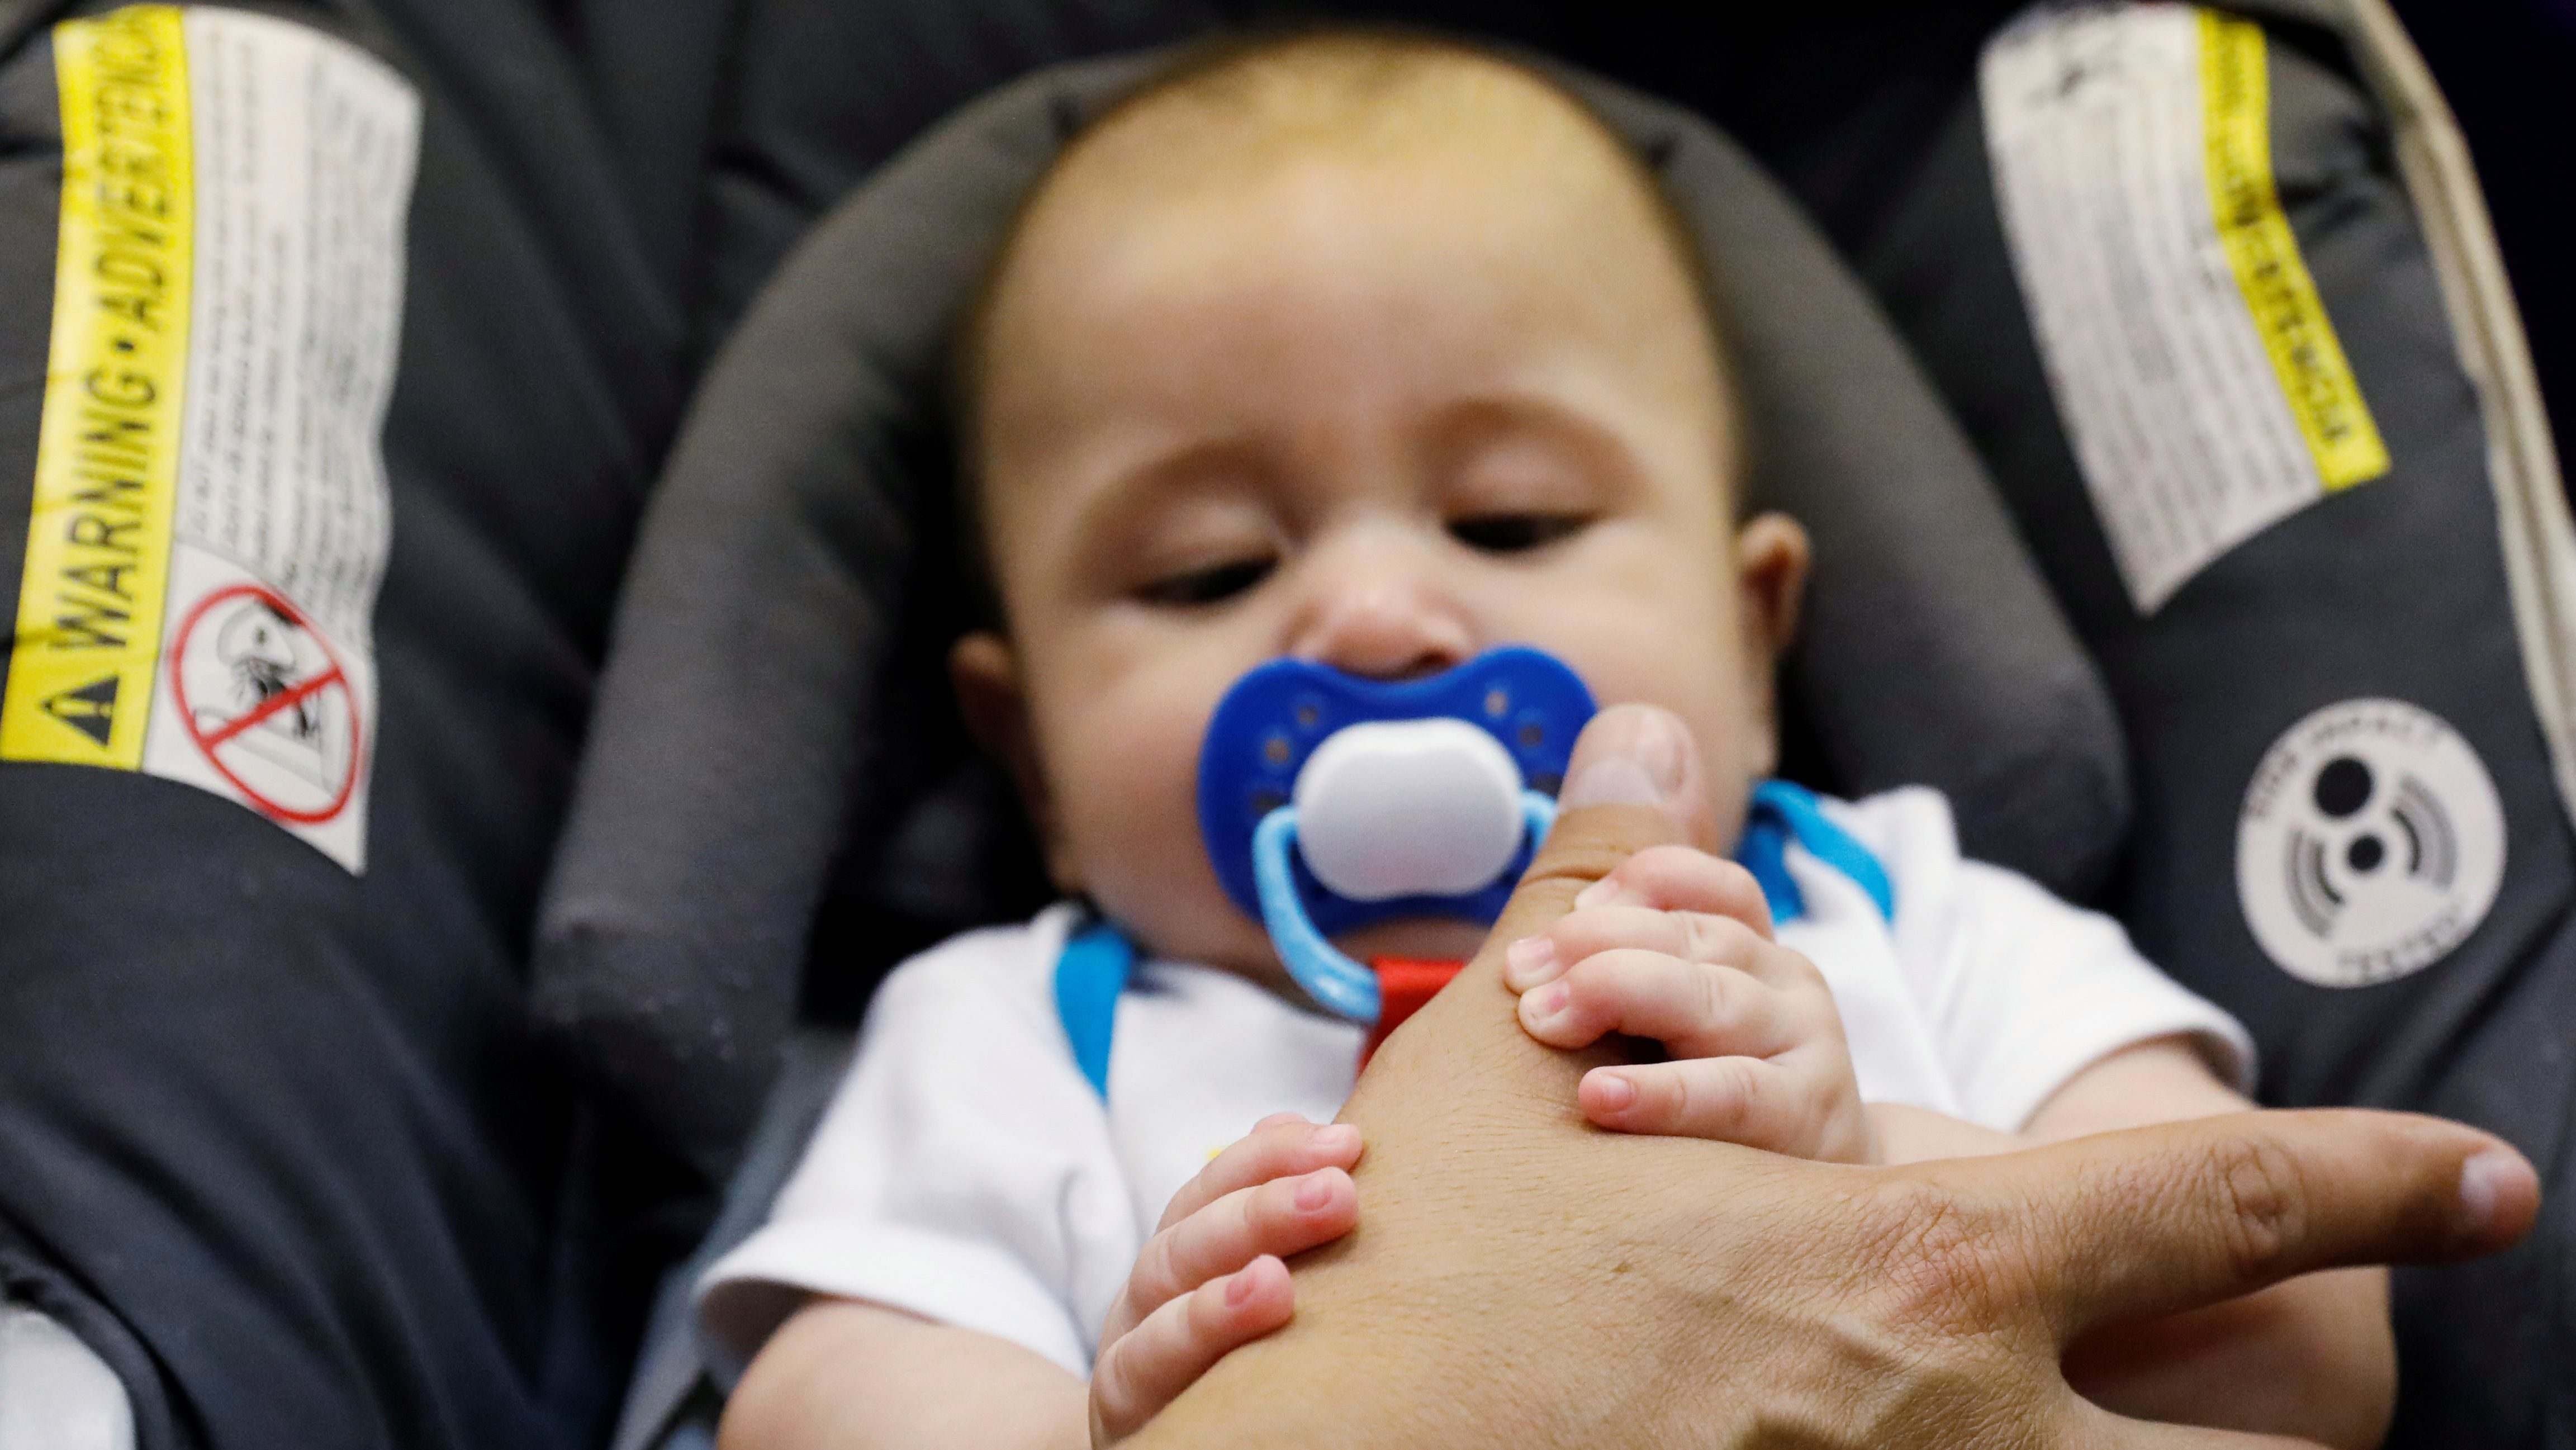 Marcelino Pizarro lets his baby son Matias play with his hand to quiet him during a church service near their home in El Paso, Texas, on May 9, 2018.